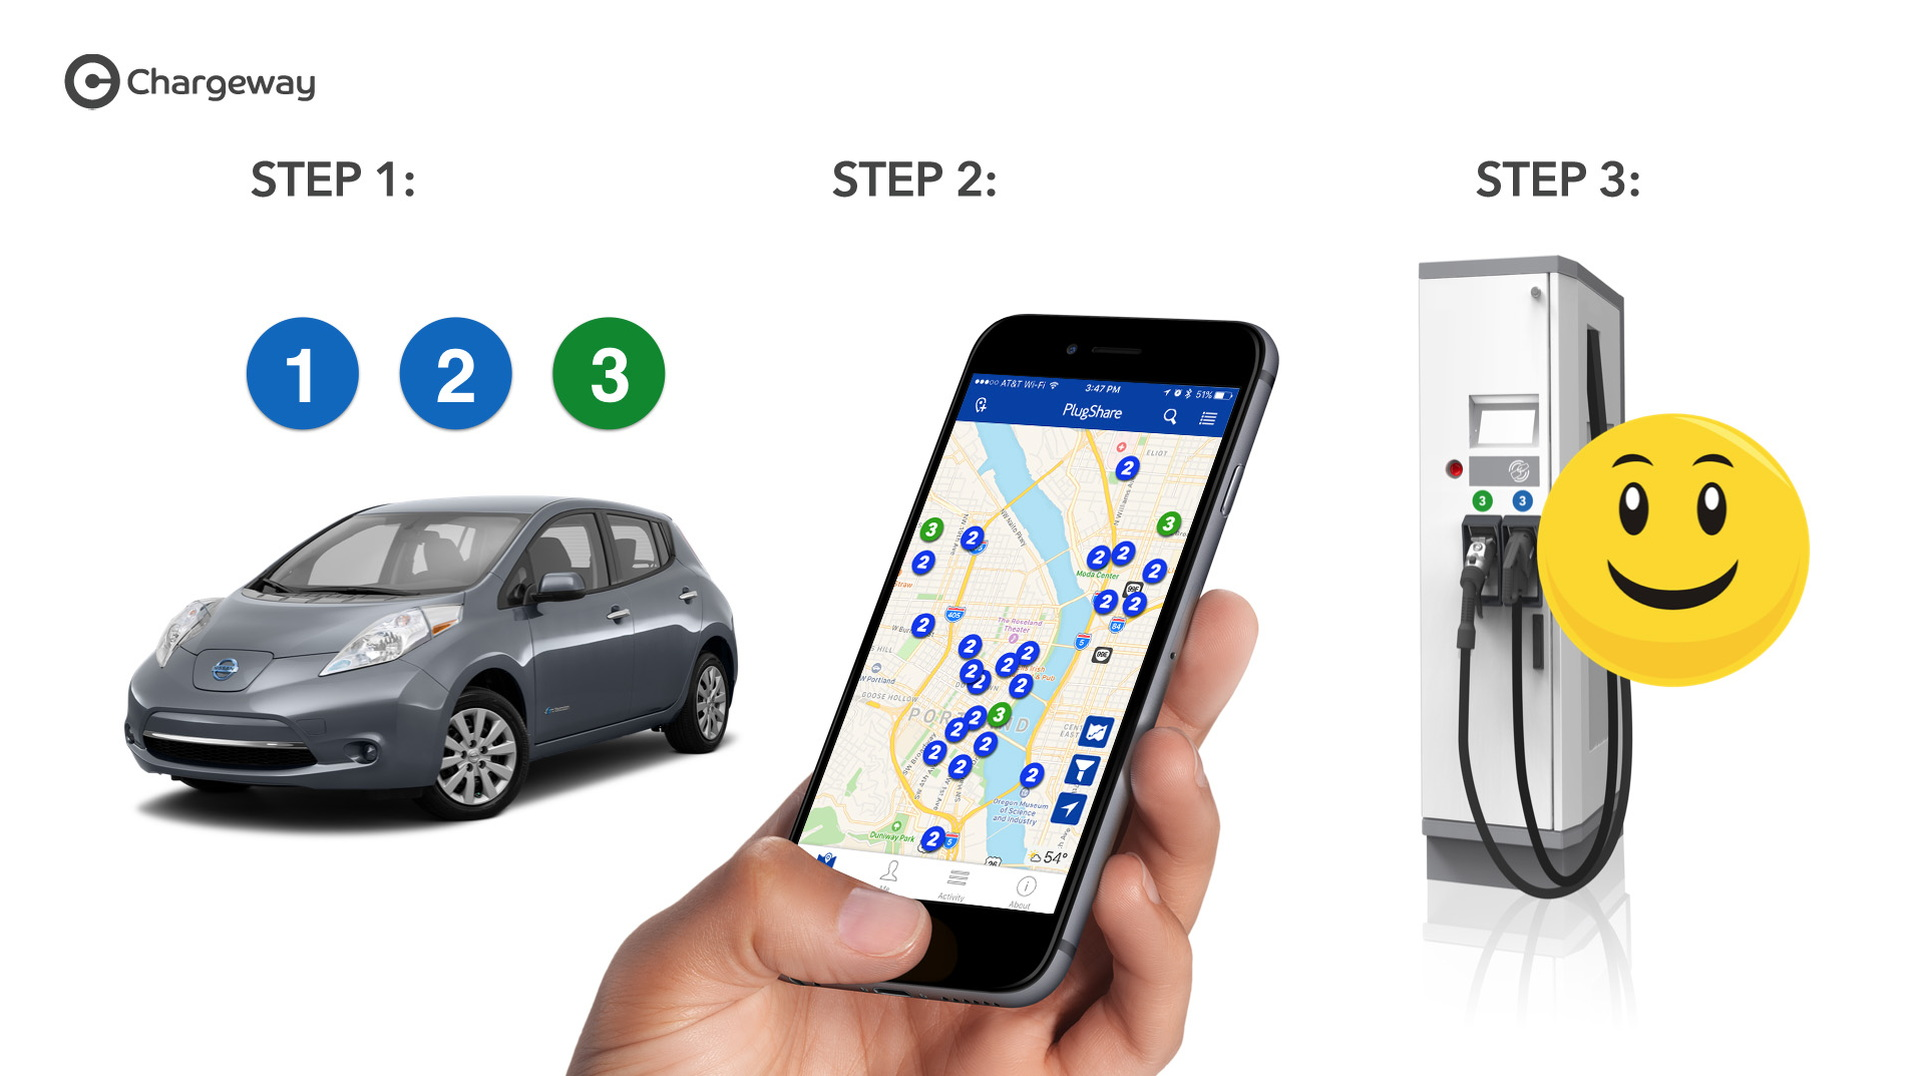 Chargeway electric-car charging symbols: the three steps to figure out how to charge your car